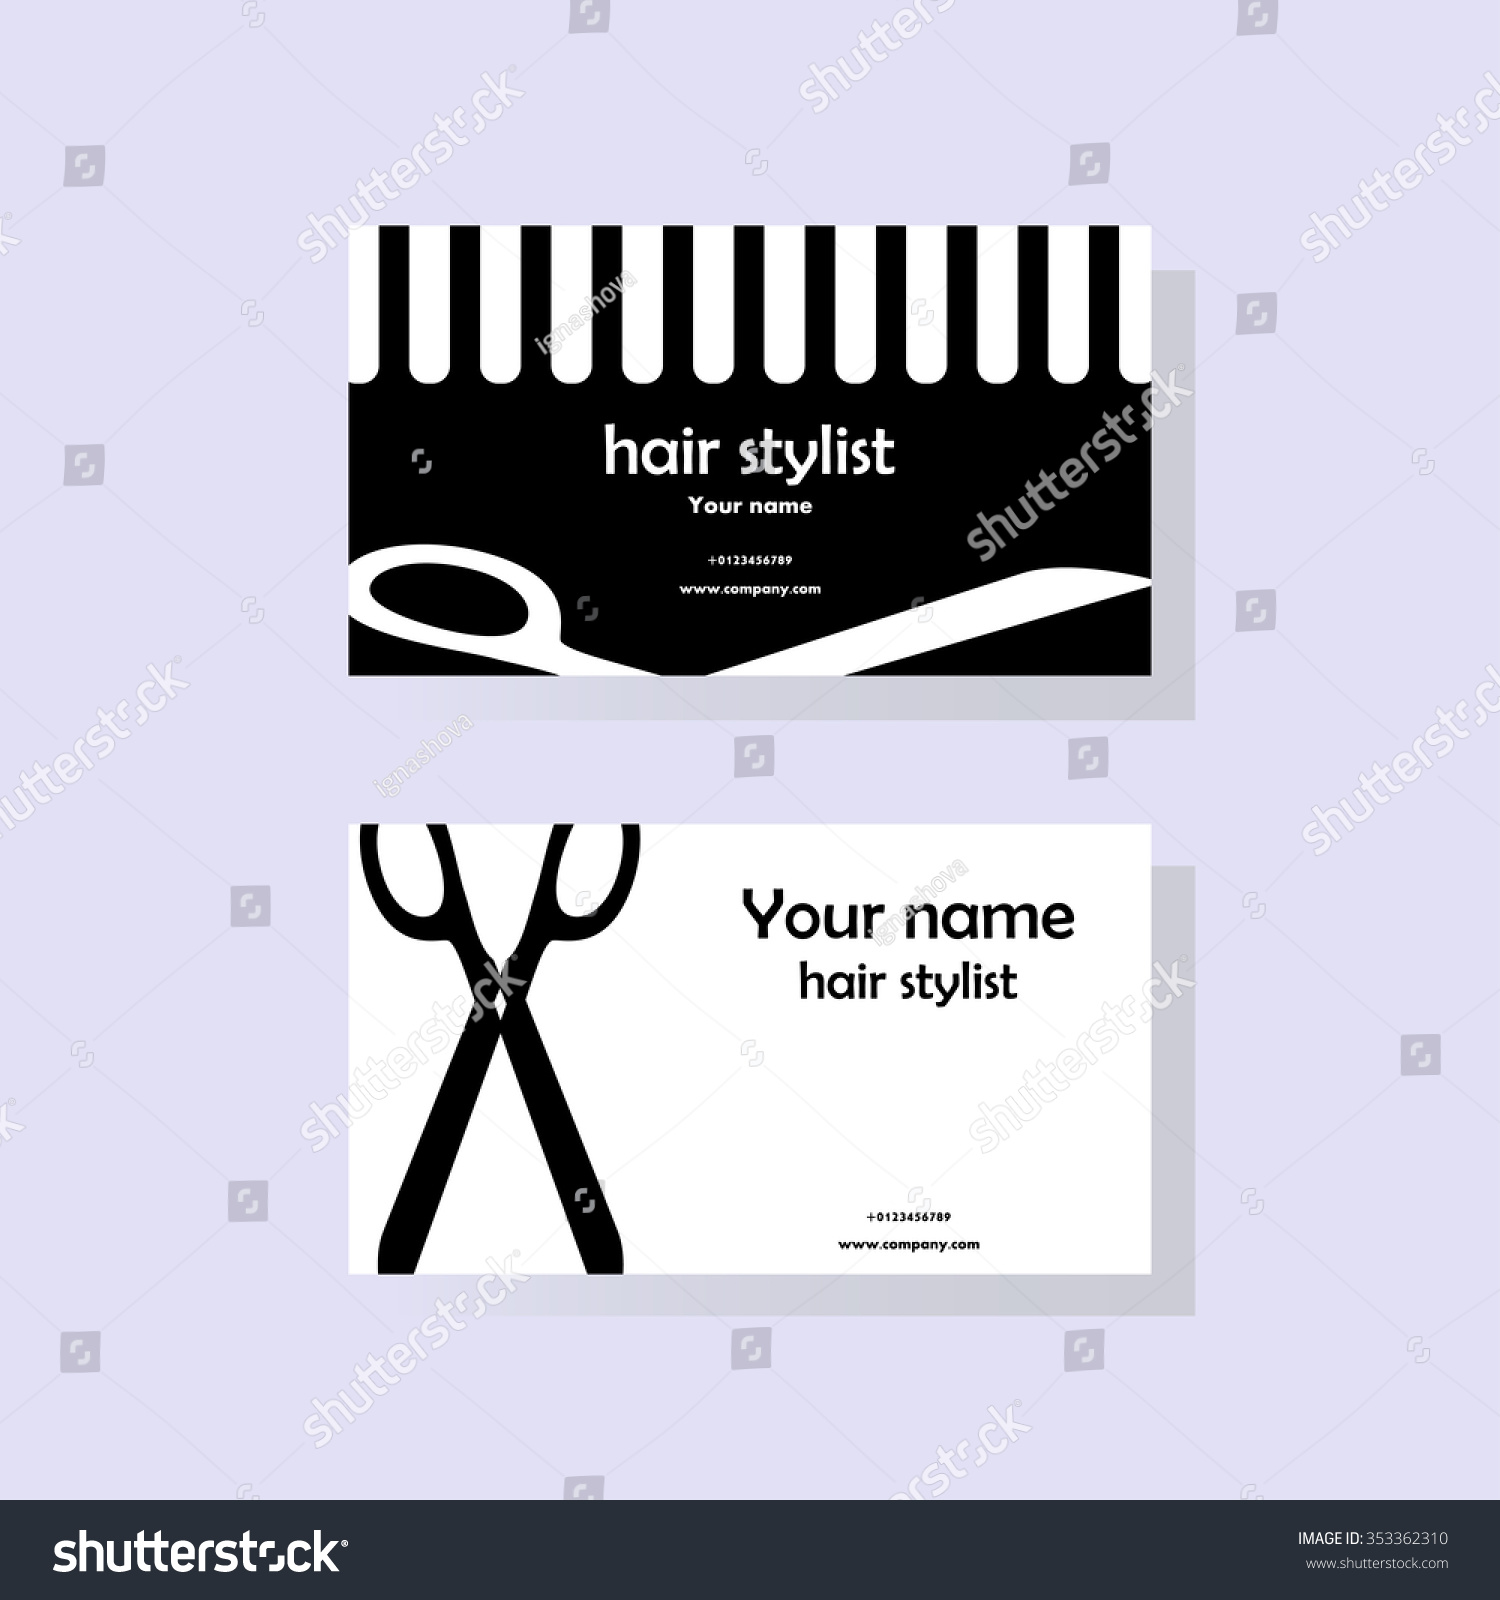 Hairdresser business cards vector image collections card design attractive business cards hairdresser model business card ideas hairdresser business cards vector choice image card design reheart Choice Image